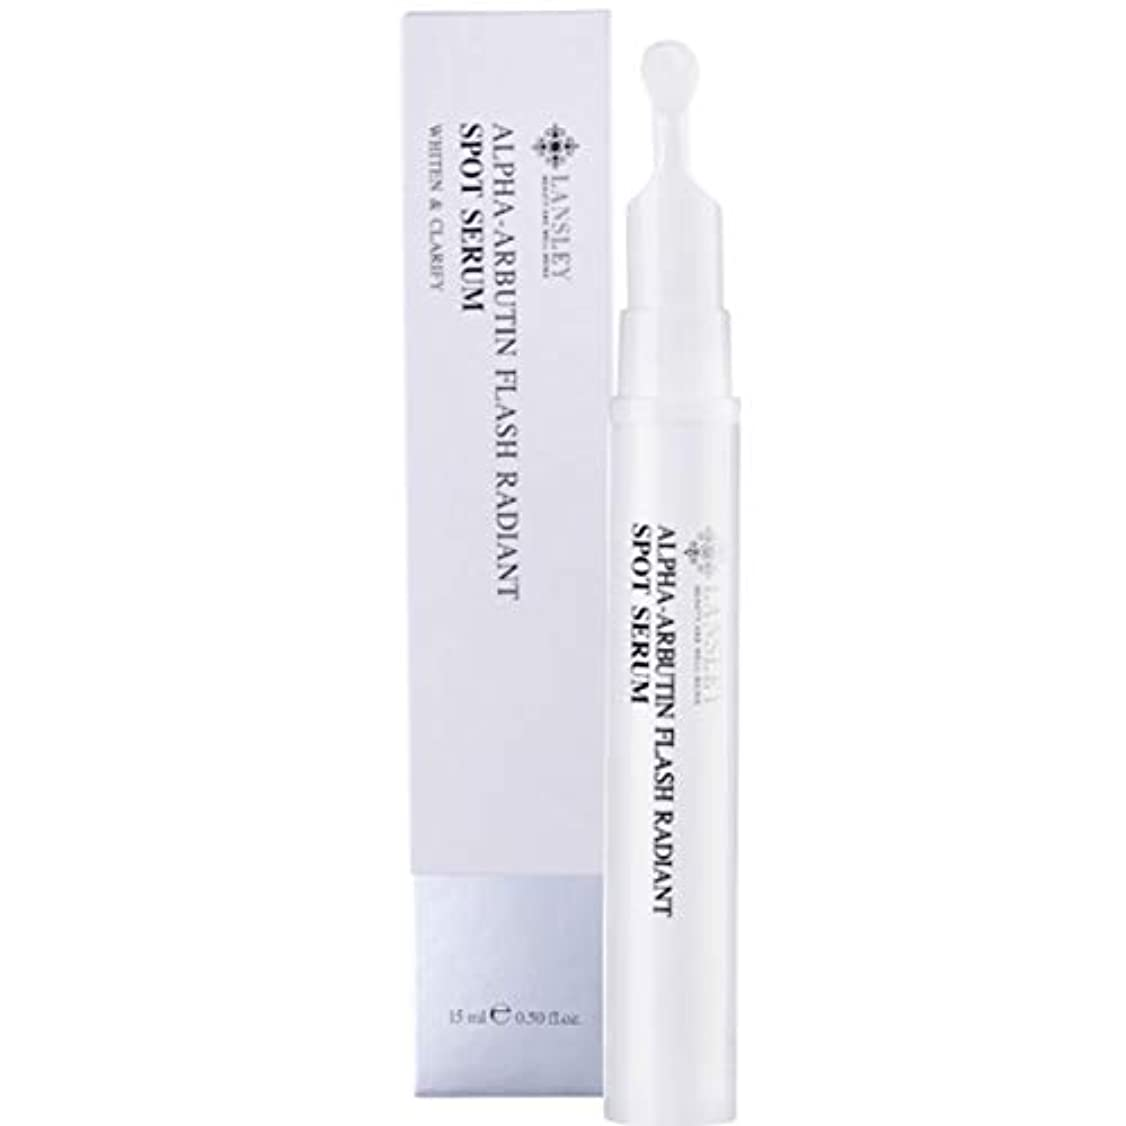 アルバニー受取人航空機Lansley Alpha Arbutin Flash Radiant Spot Serum 15 ML.…